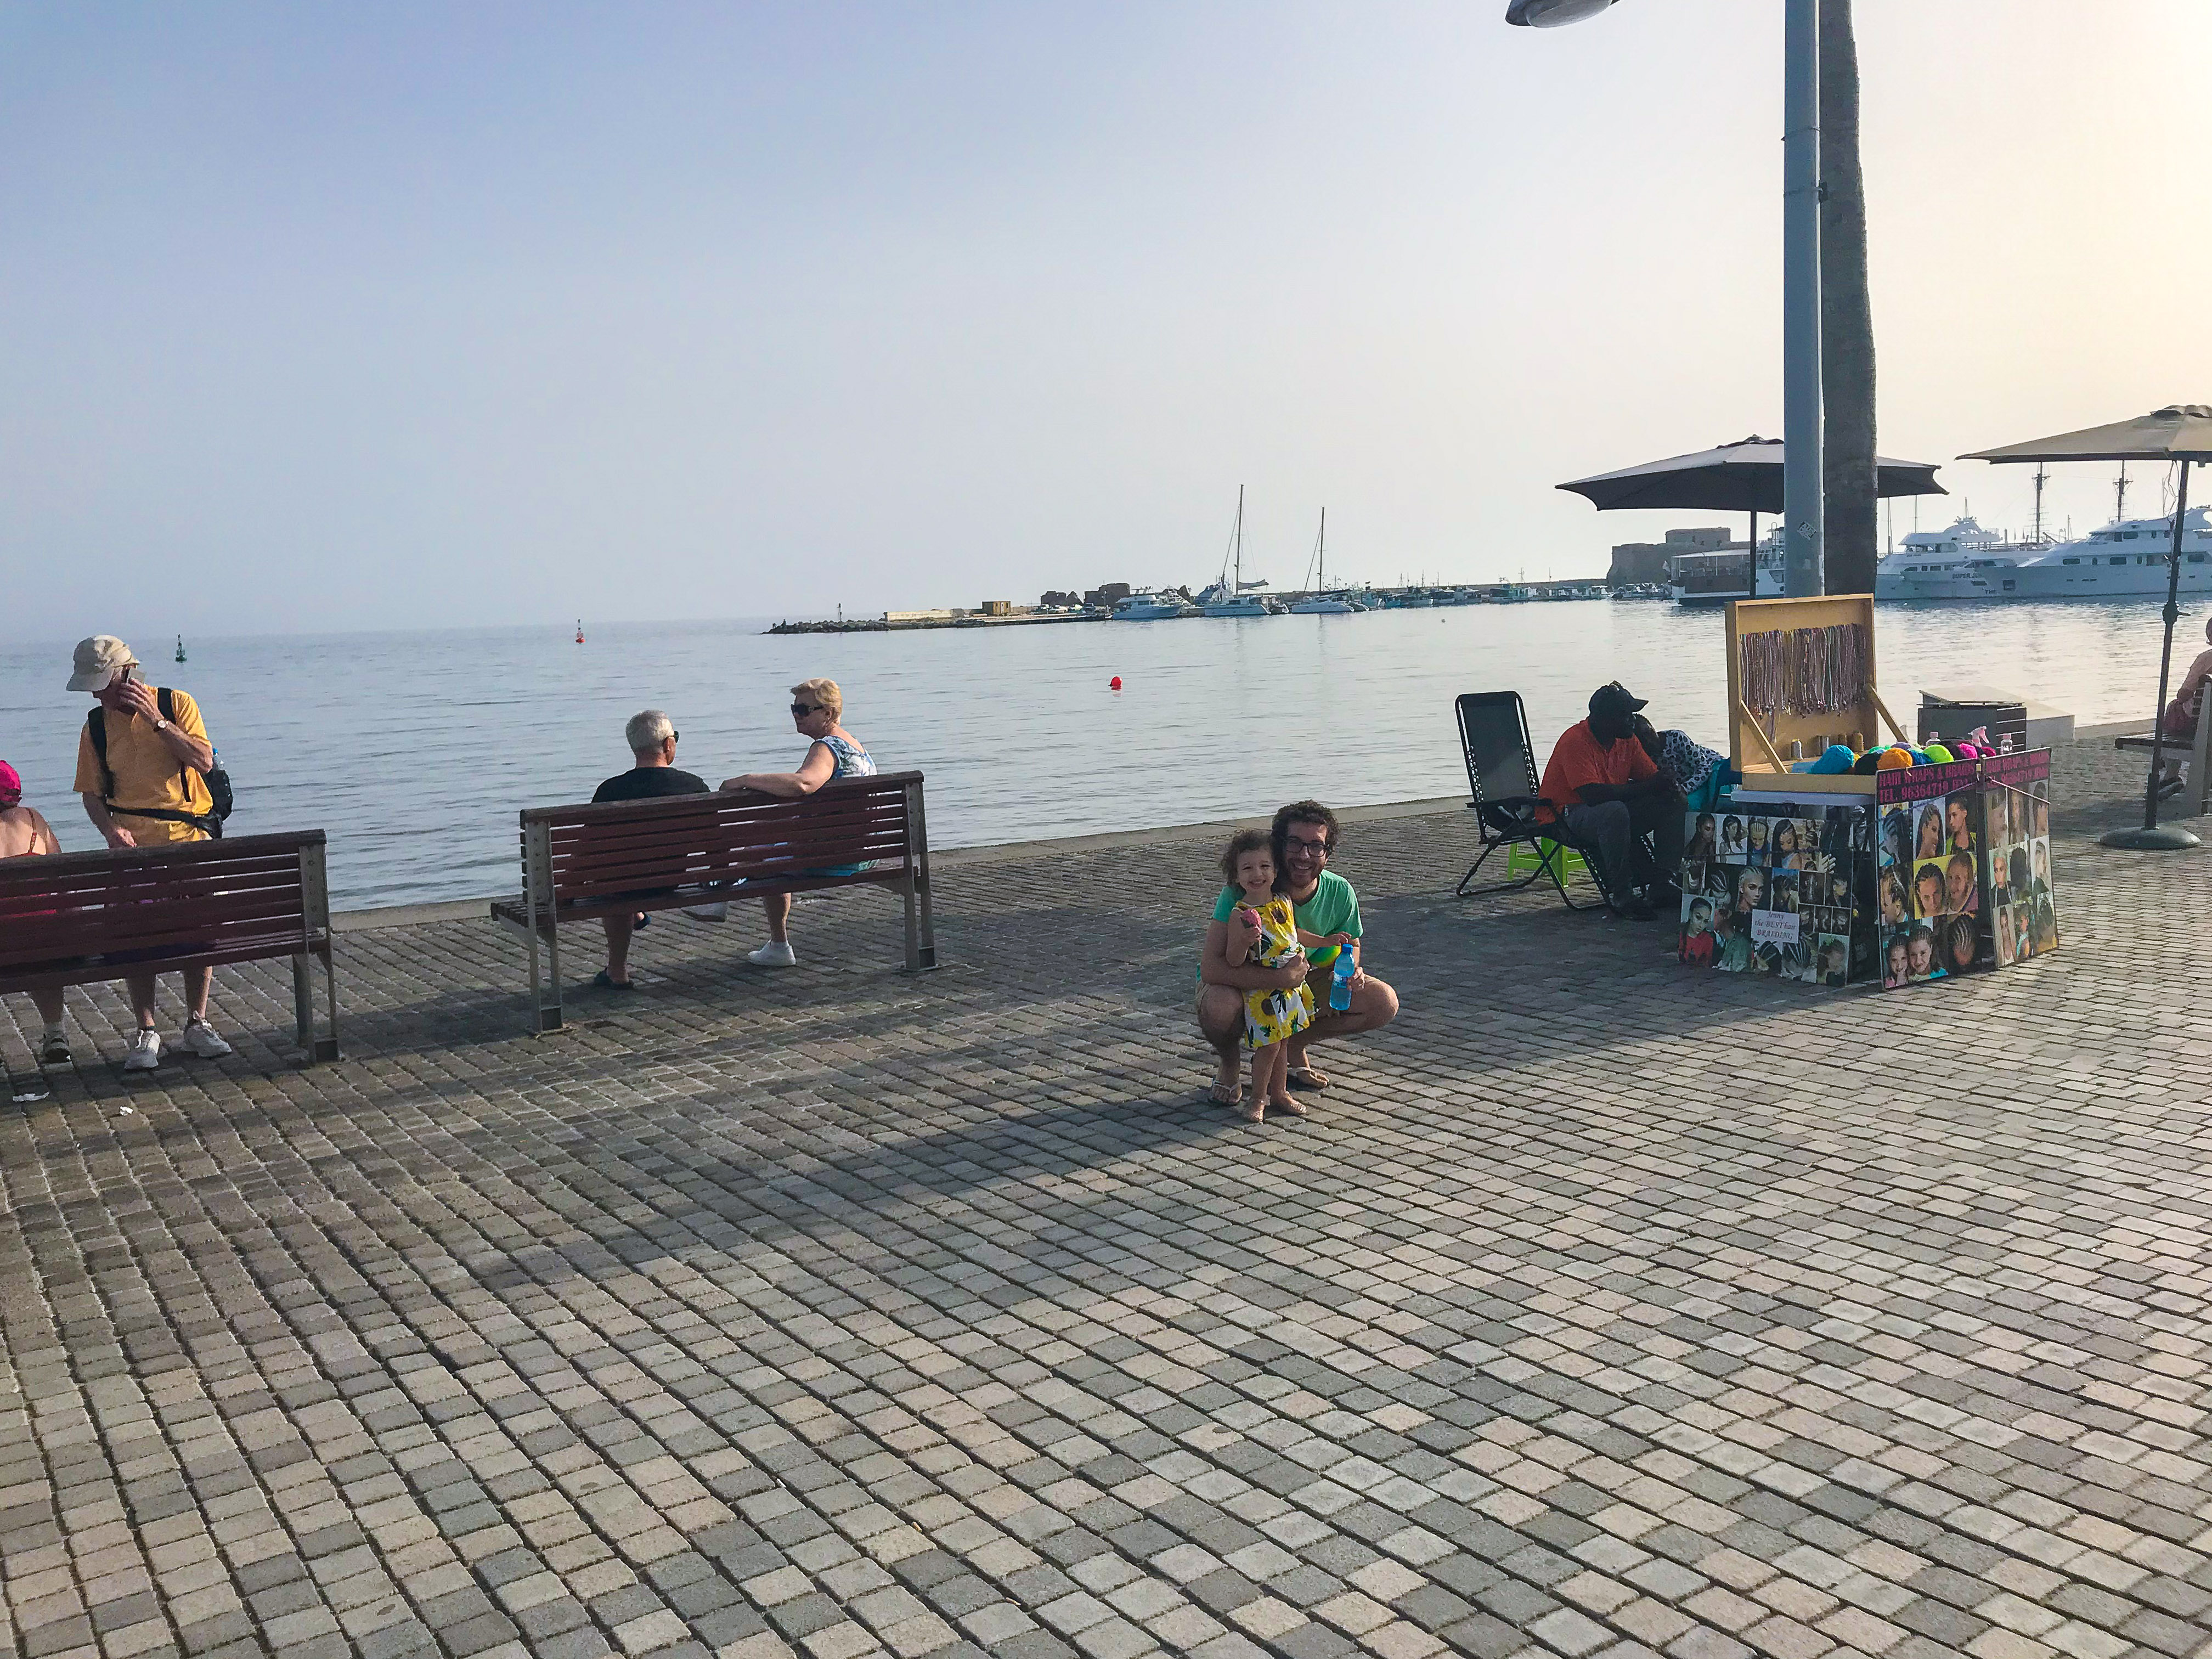 things to do in paphos cyprus - Paphos Marina